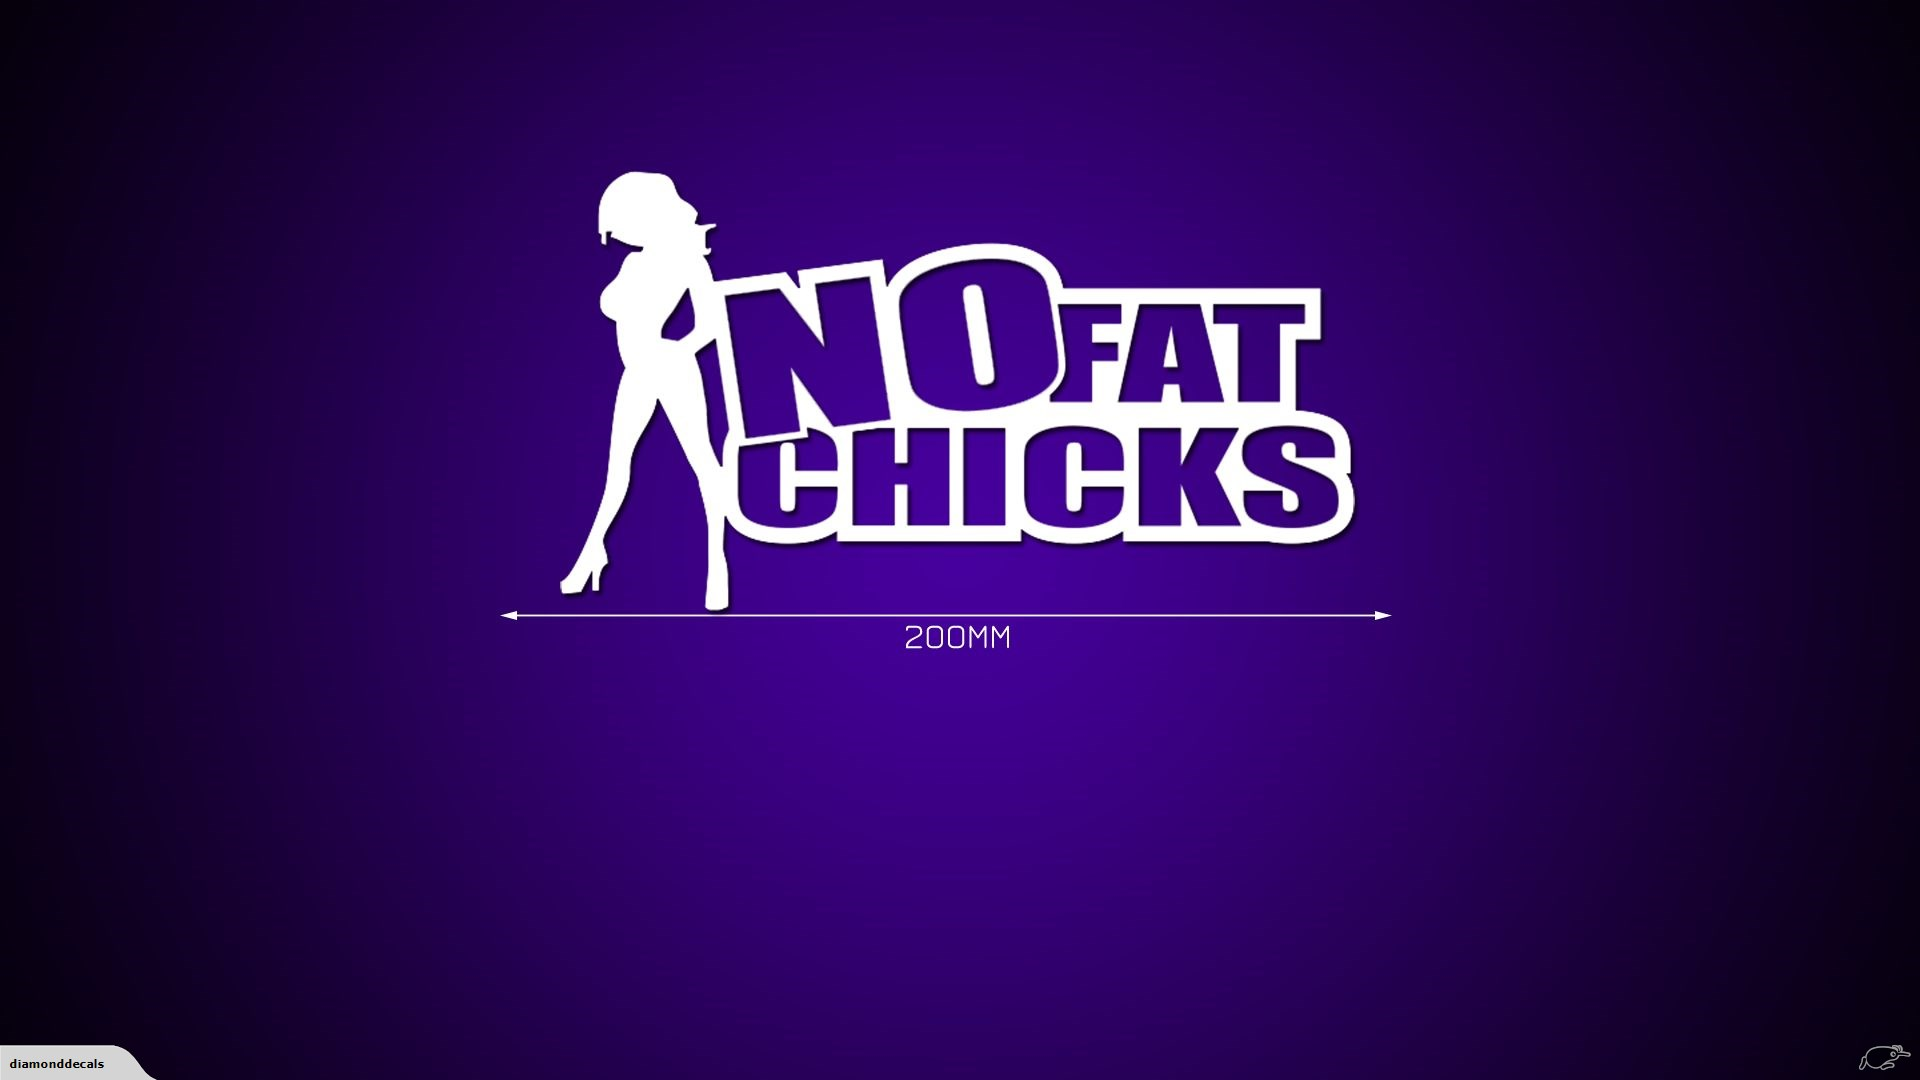 No Fat Chicks   JDM Car Decal Sticker   DiamondDecals Trade Me 1920x1080